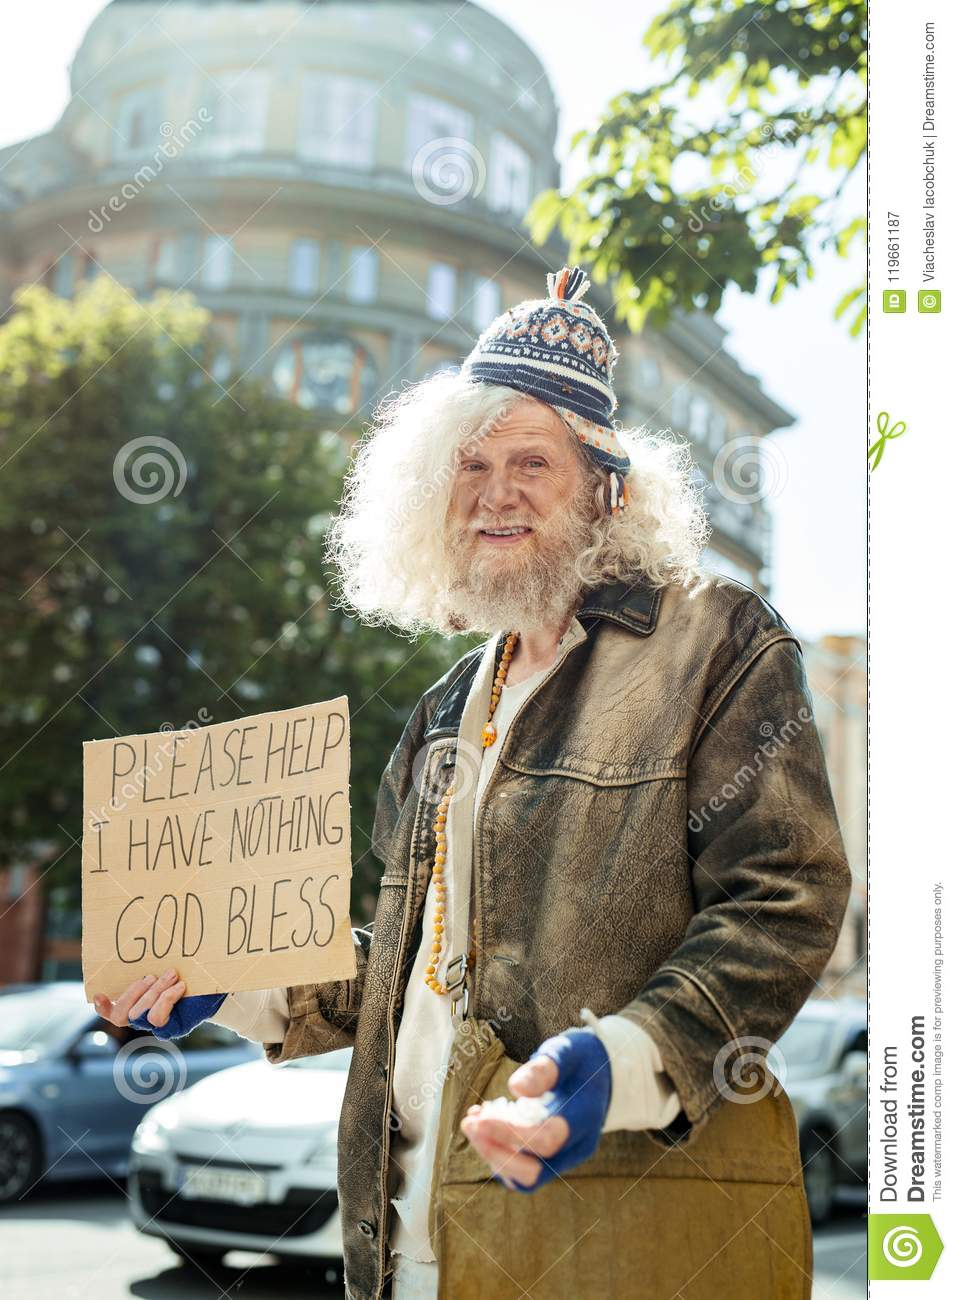 d6c370e5abe Homeless starving man wearing old brown leather jacket holding sign asking  for help